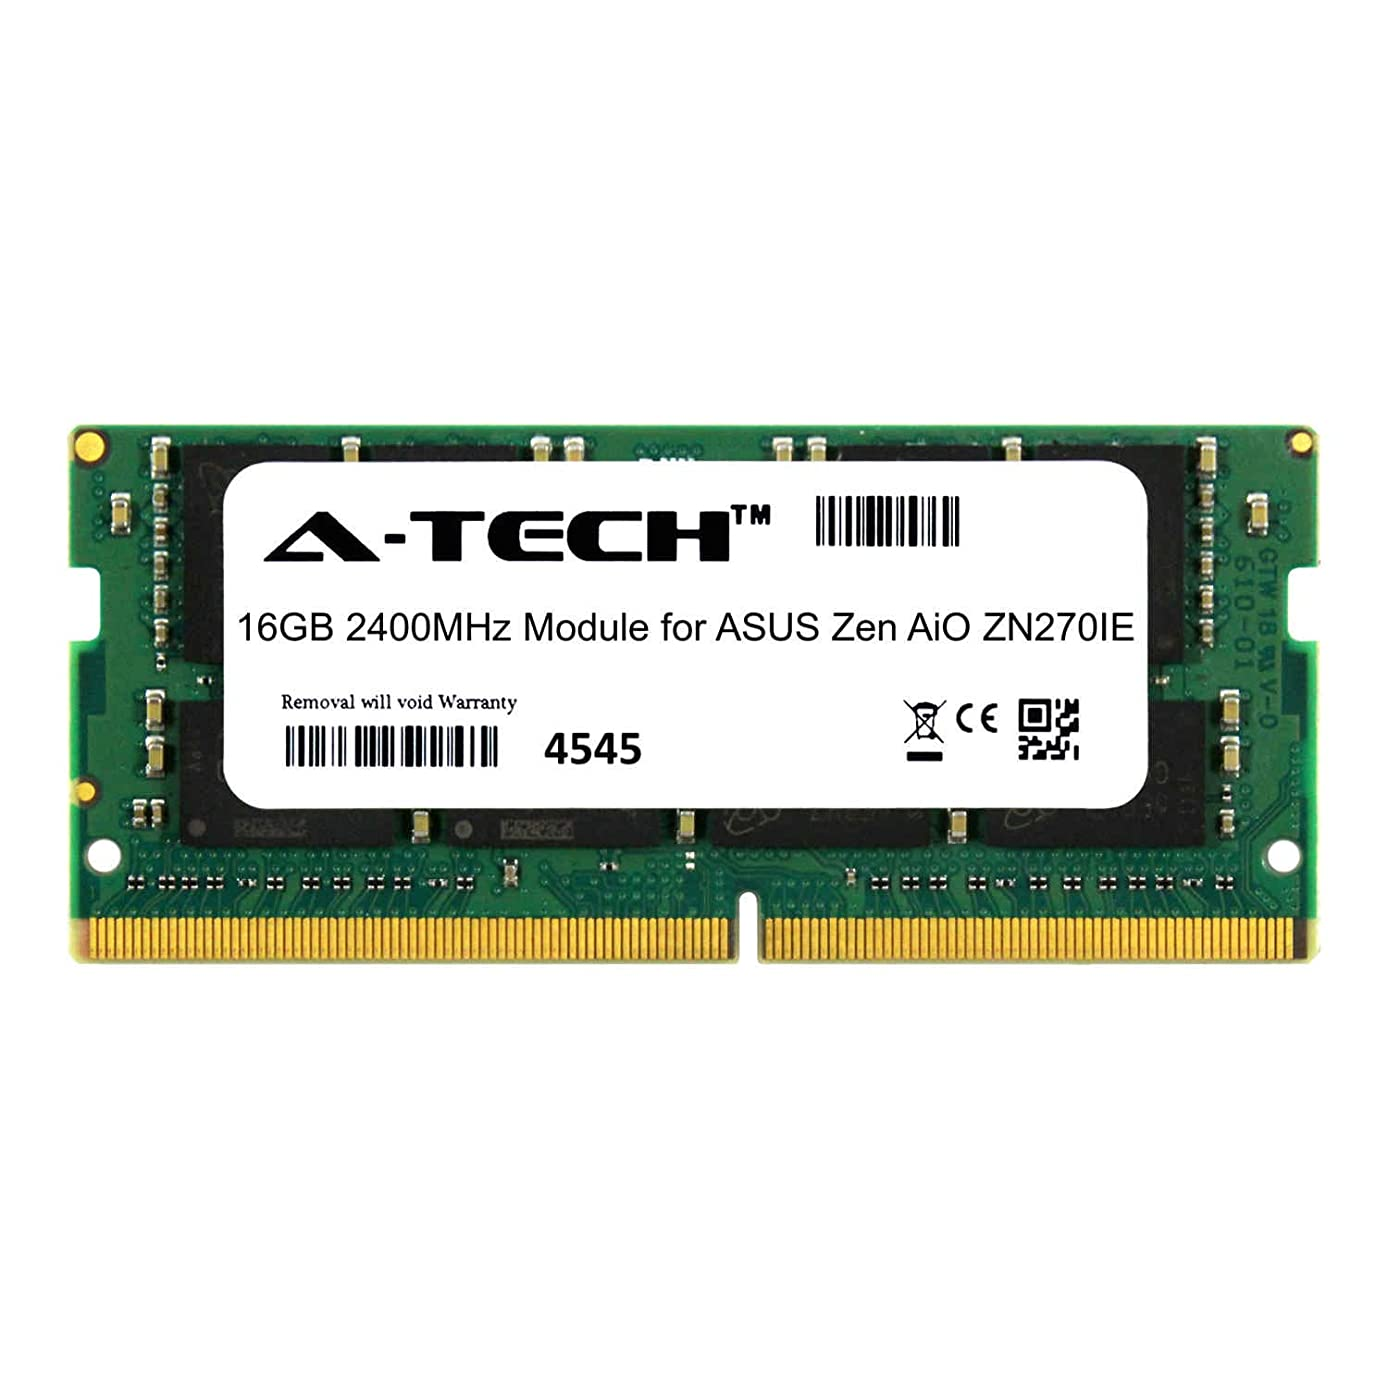 A-Tech 16GB Module for ASUS Zen AiO ZN270IE All-in-One Compatible DDR4 2400Mhz Memory Ram (ATMS360997A25831X1)